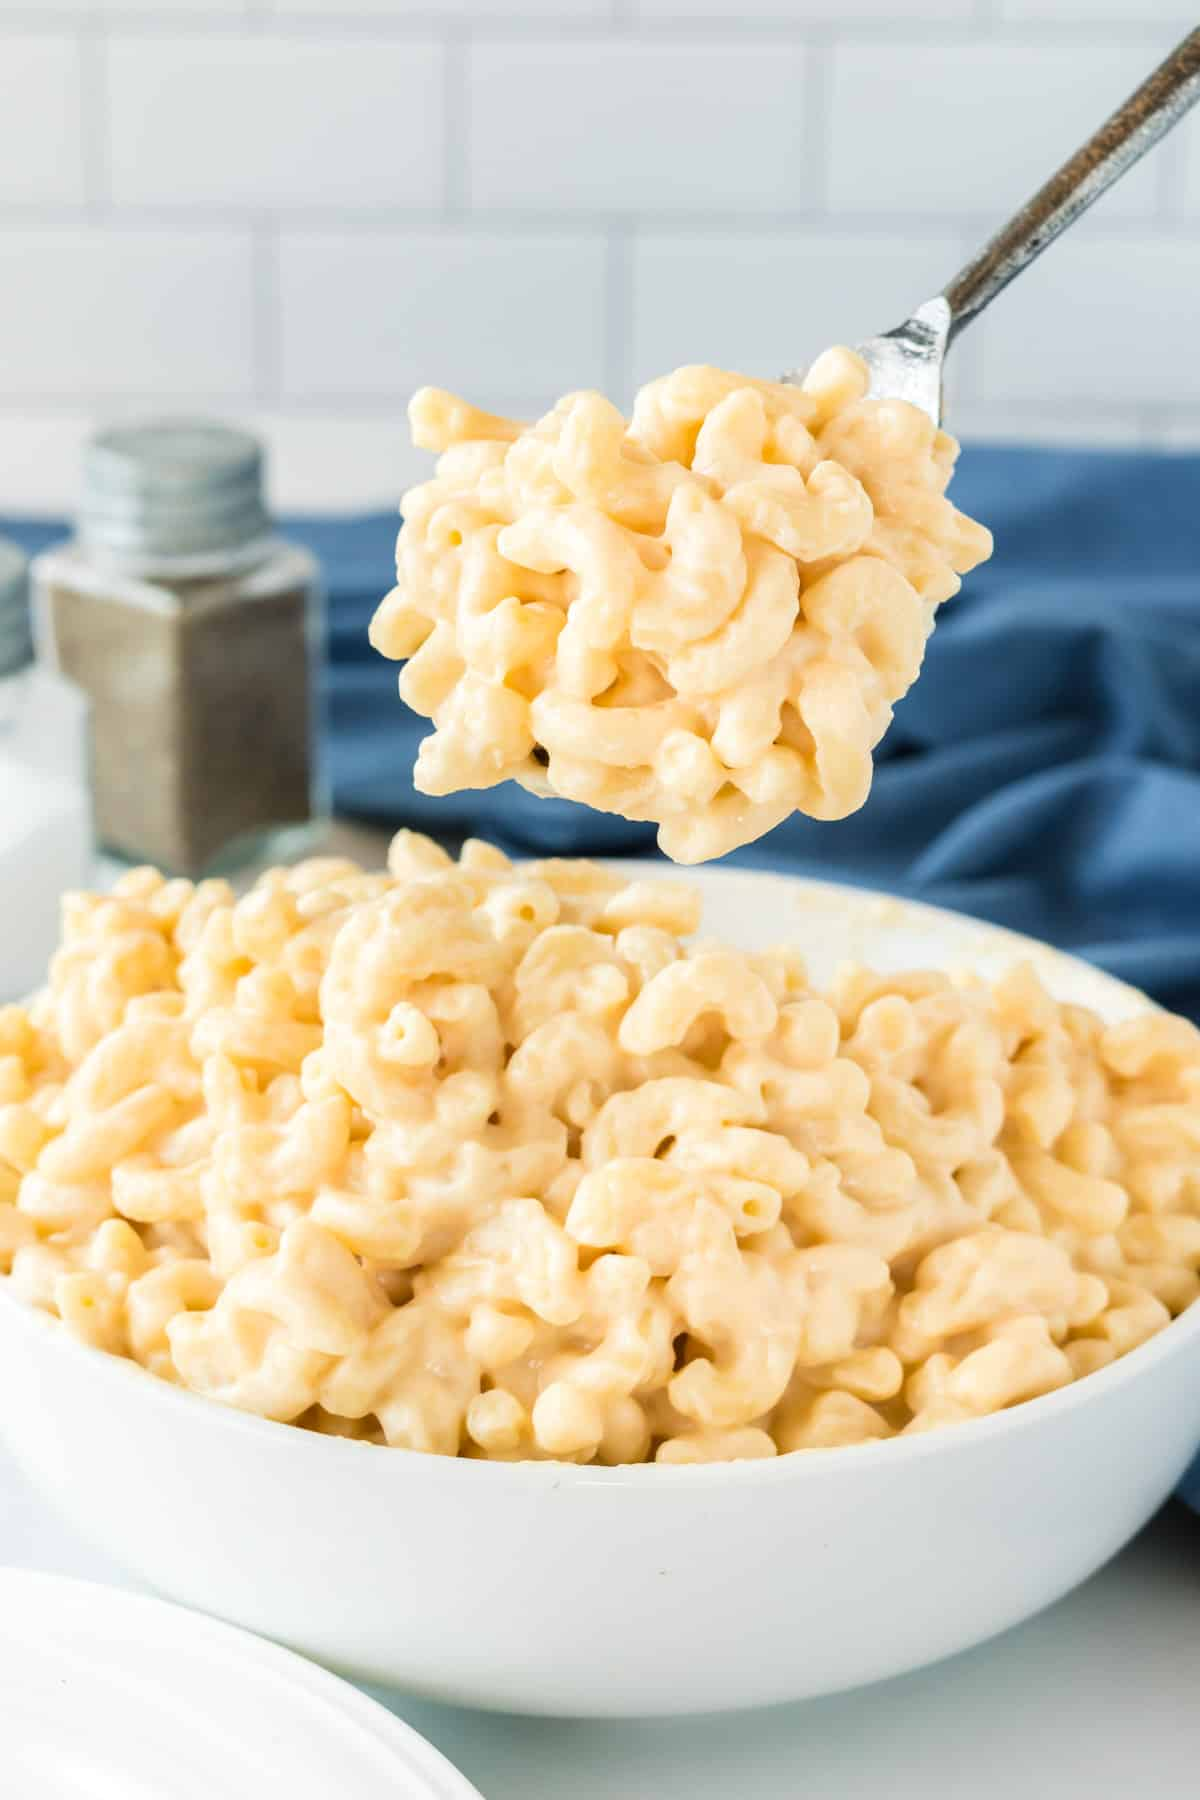 a spoon taking a scoop of mac and cheese from a bowl